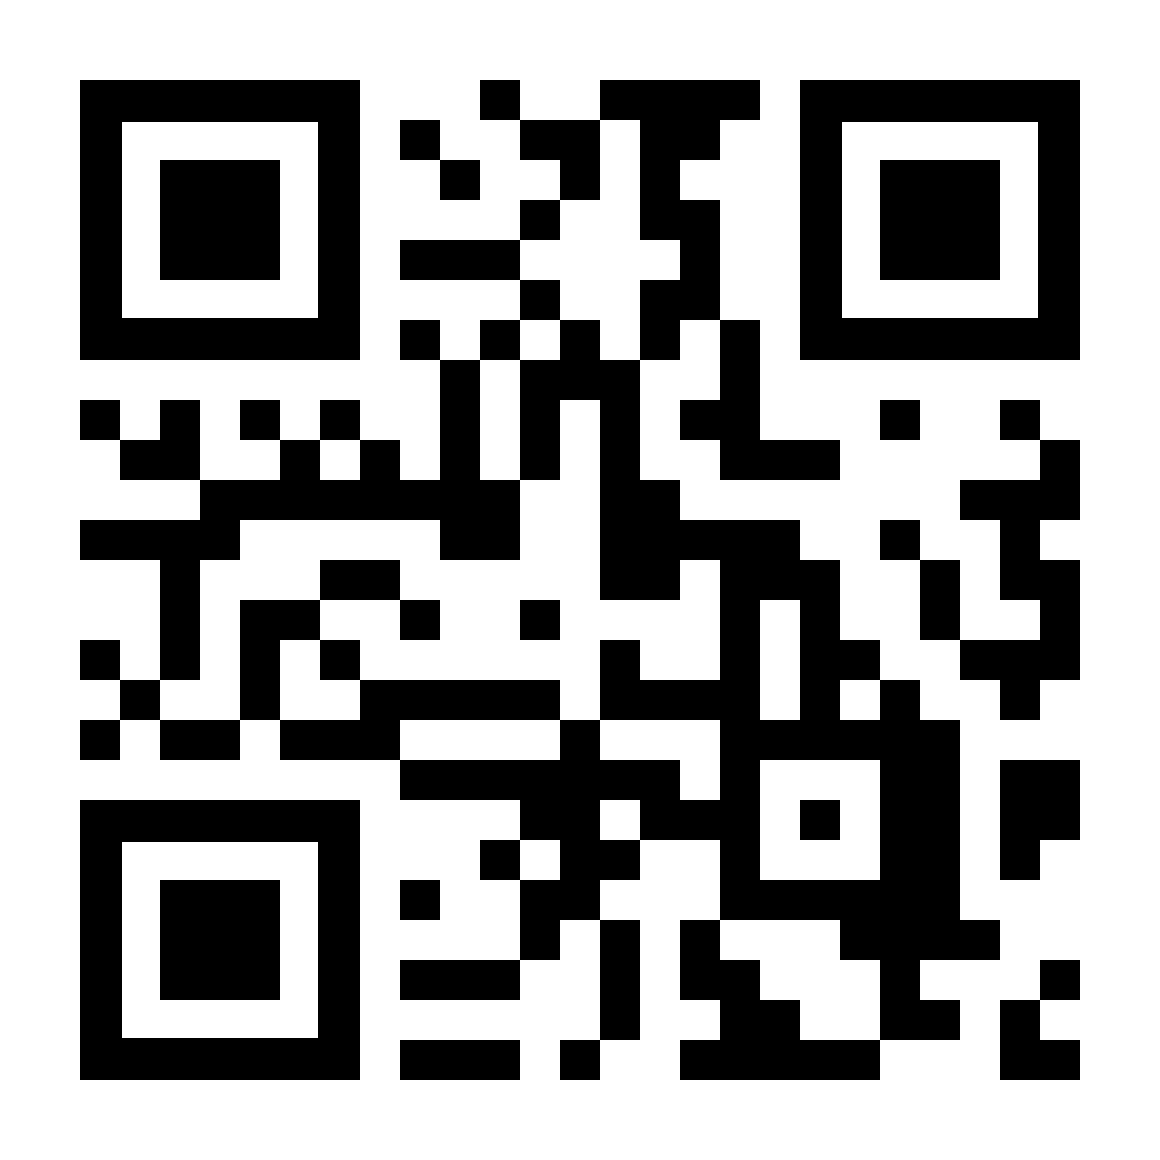 practitioner foot clinic QR code